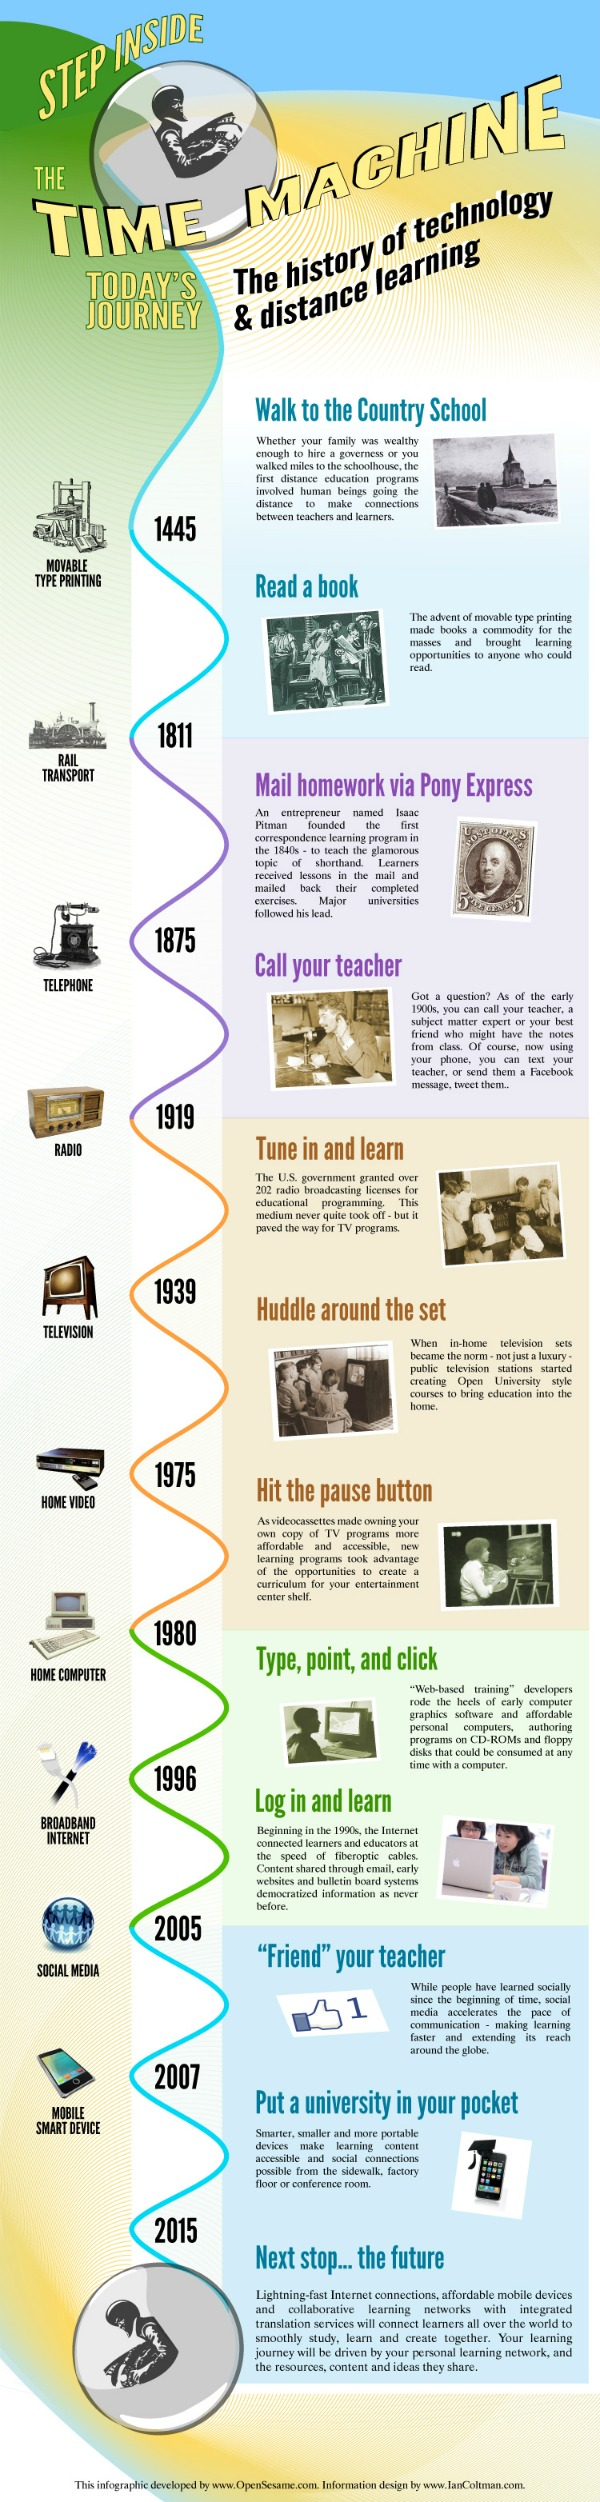 The History of Technology and Distance Learning